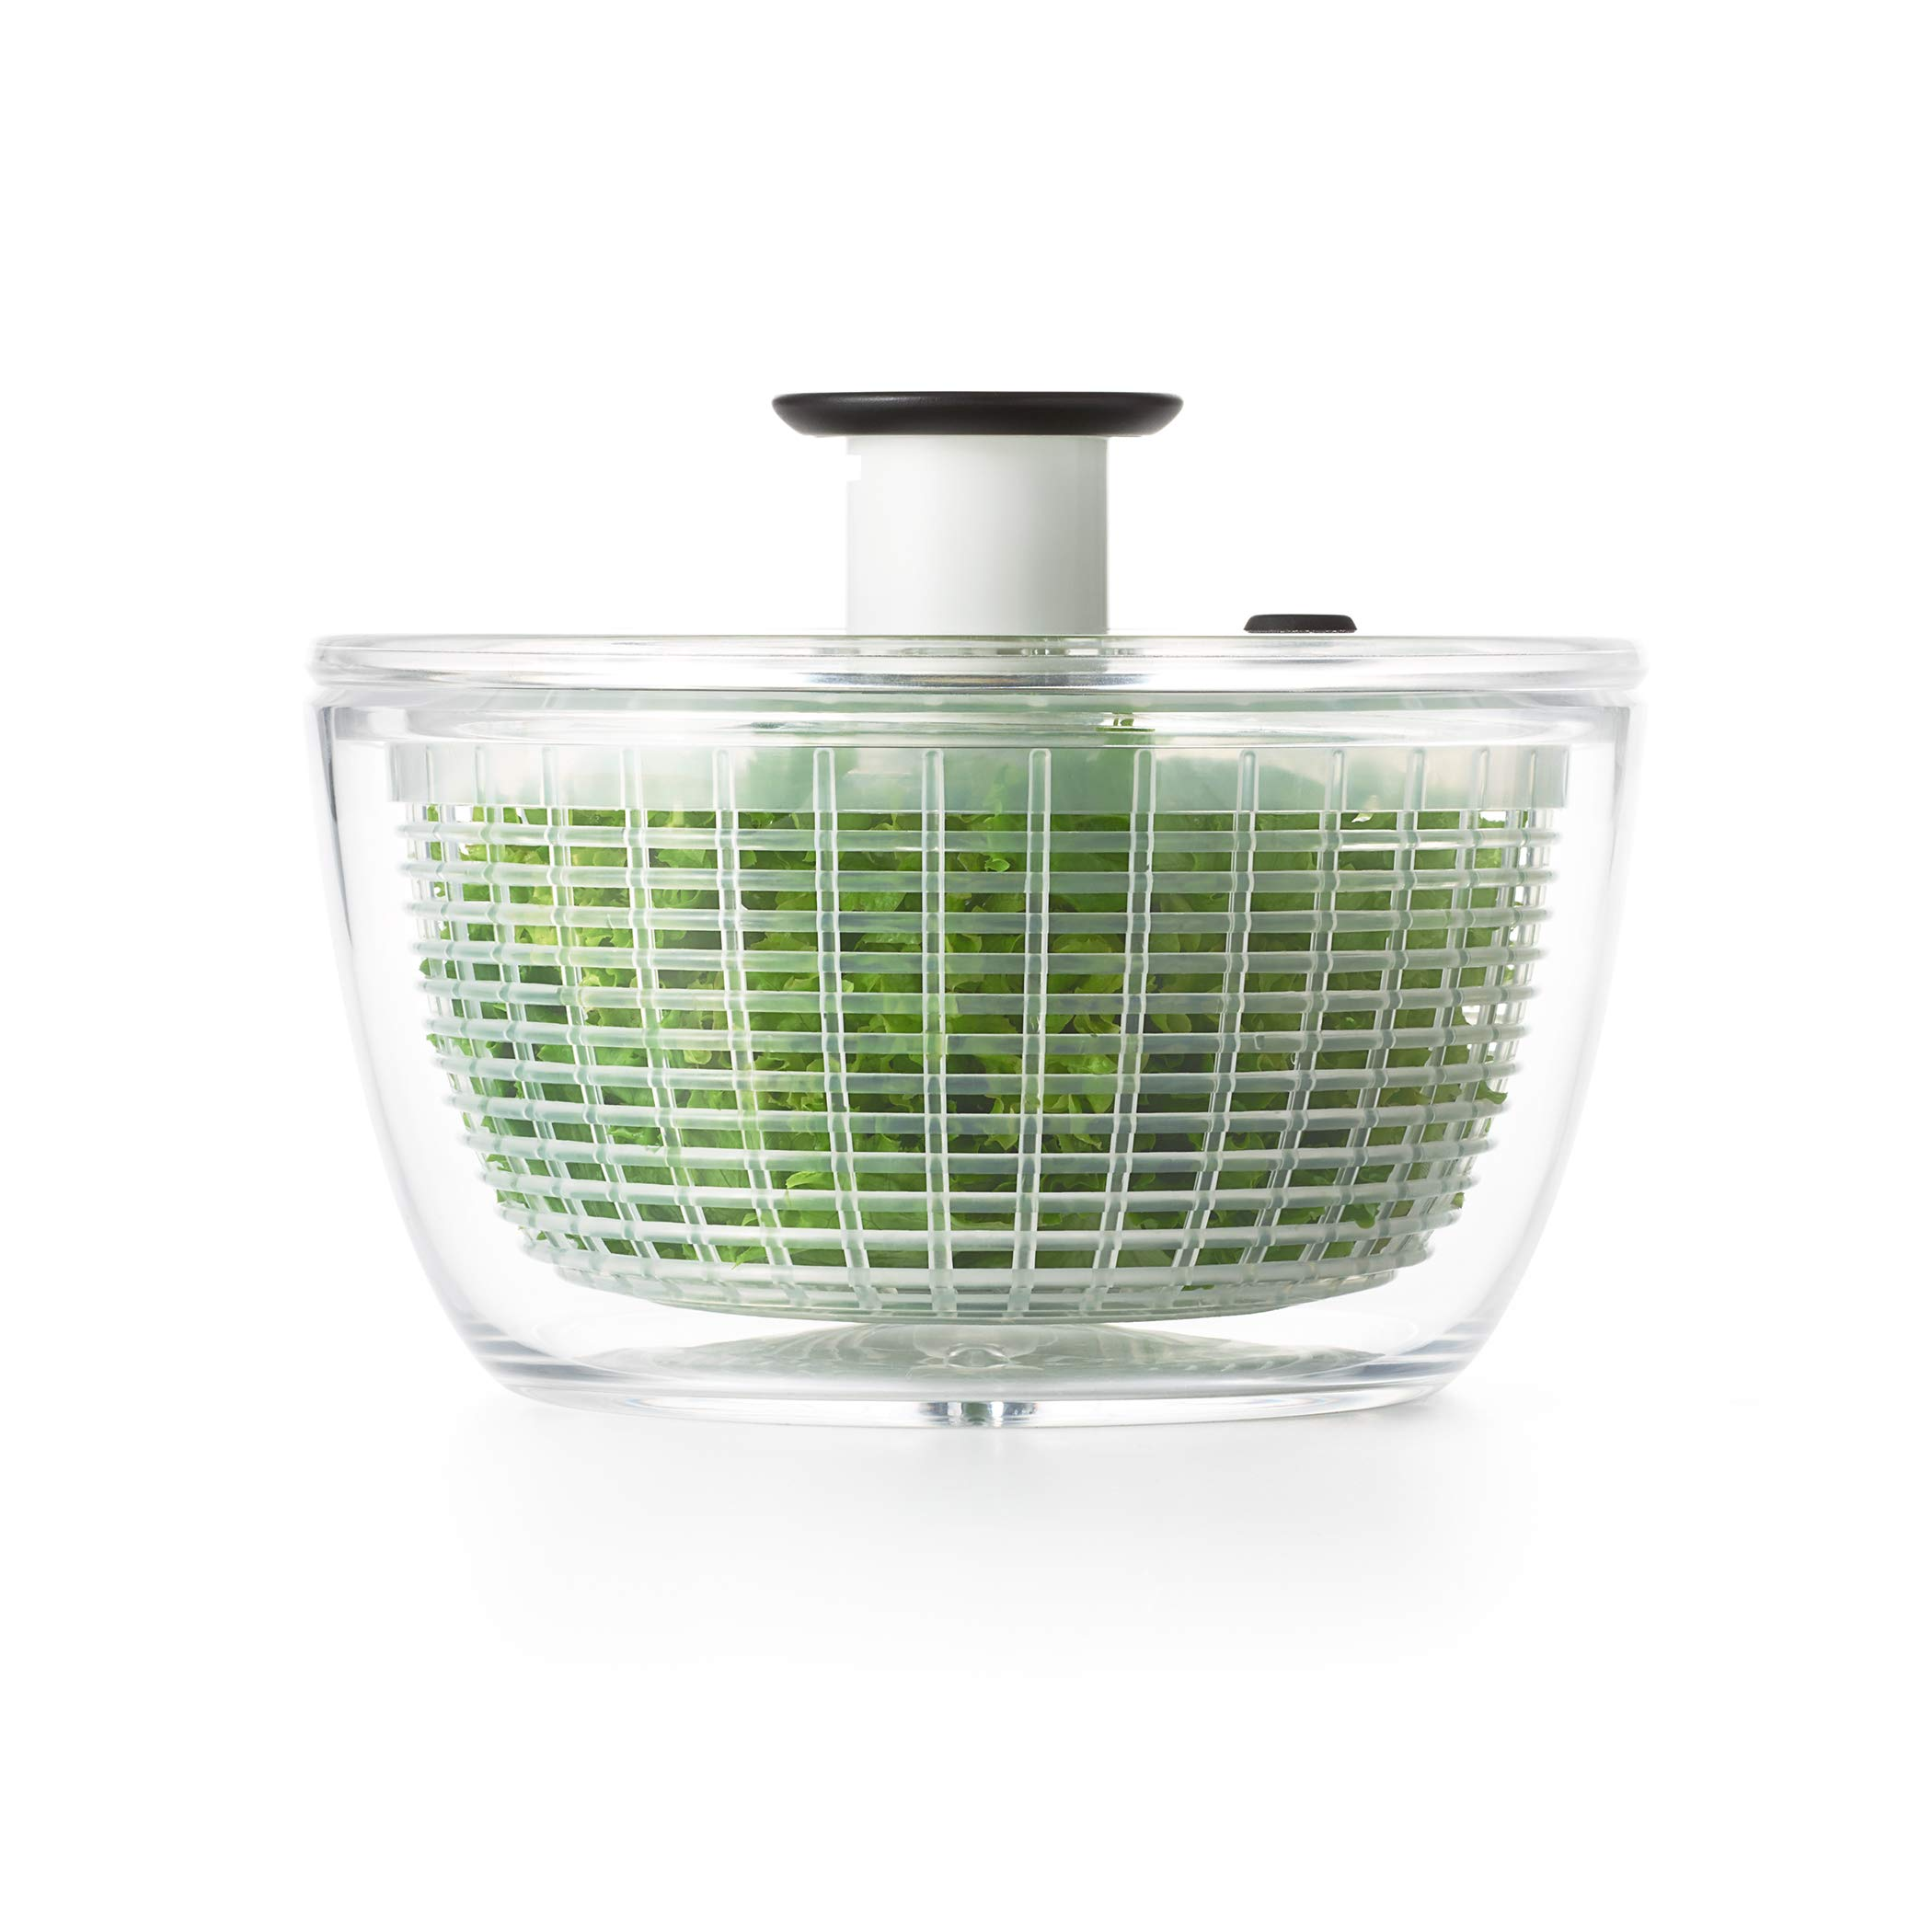 OXO Good Grips Little Salad & Herb Spinner by OXO